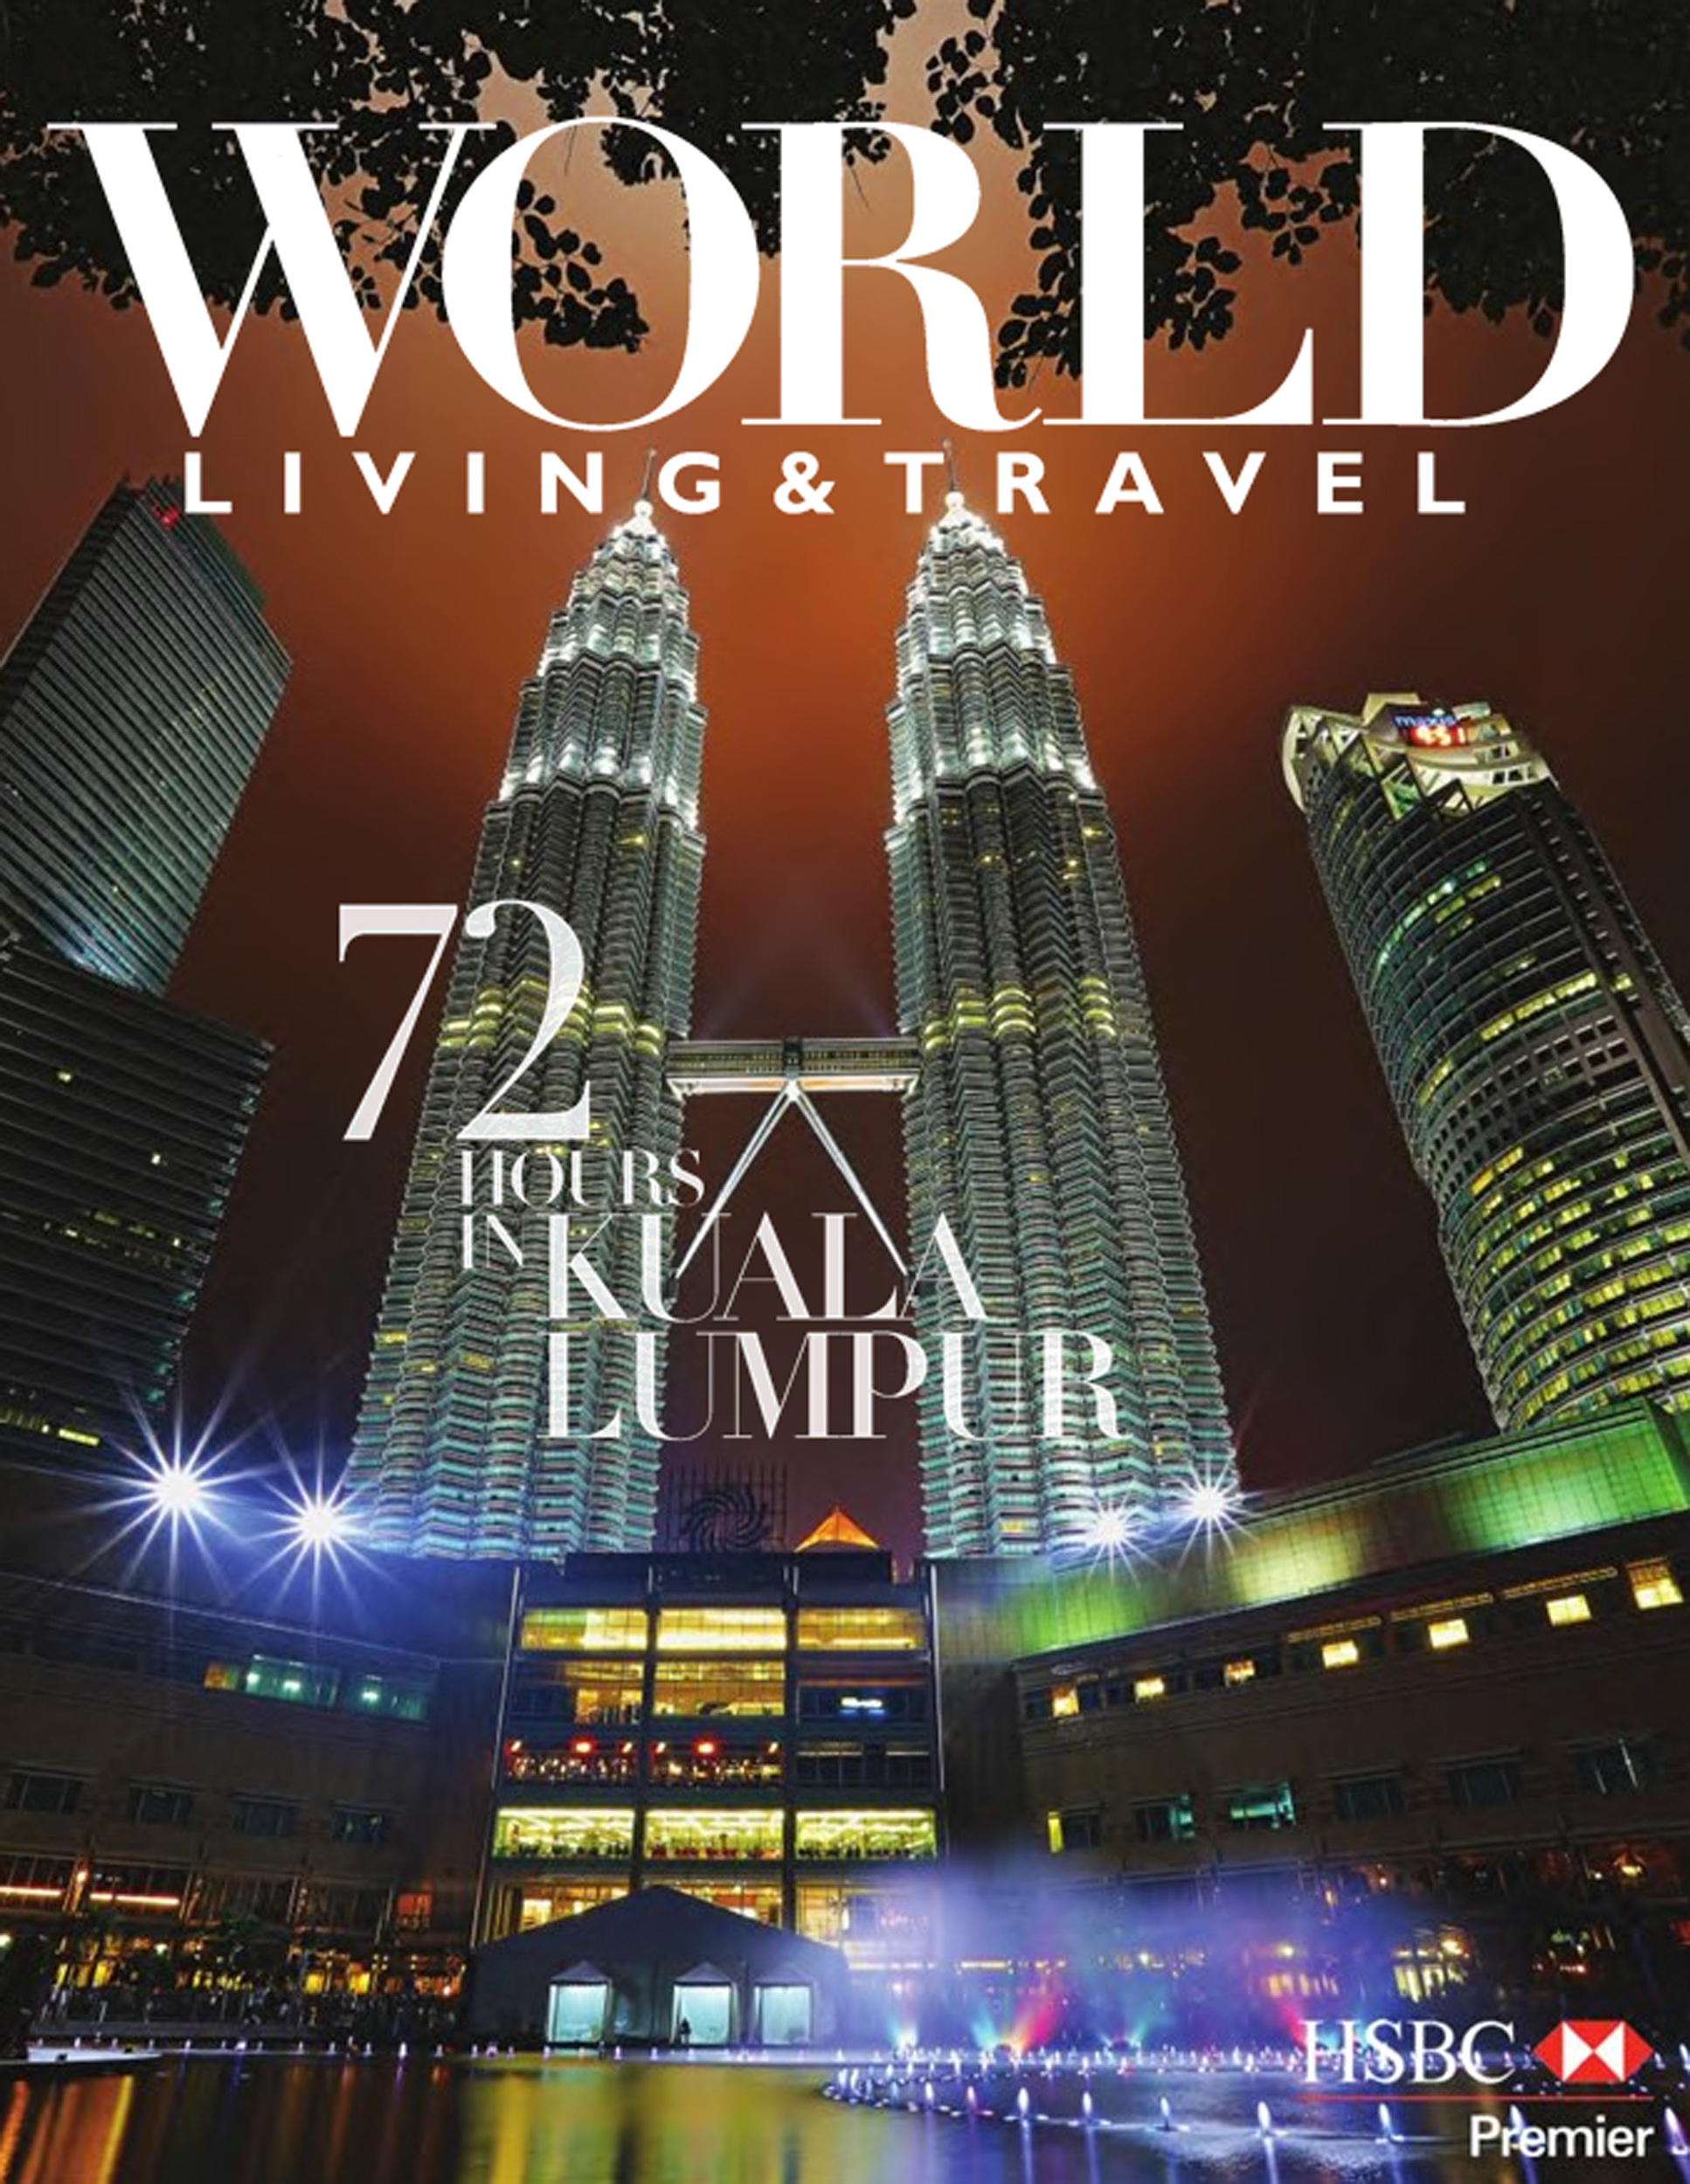 We were delighted to be featured in the prestigious lifestyle publication: